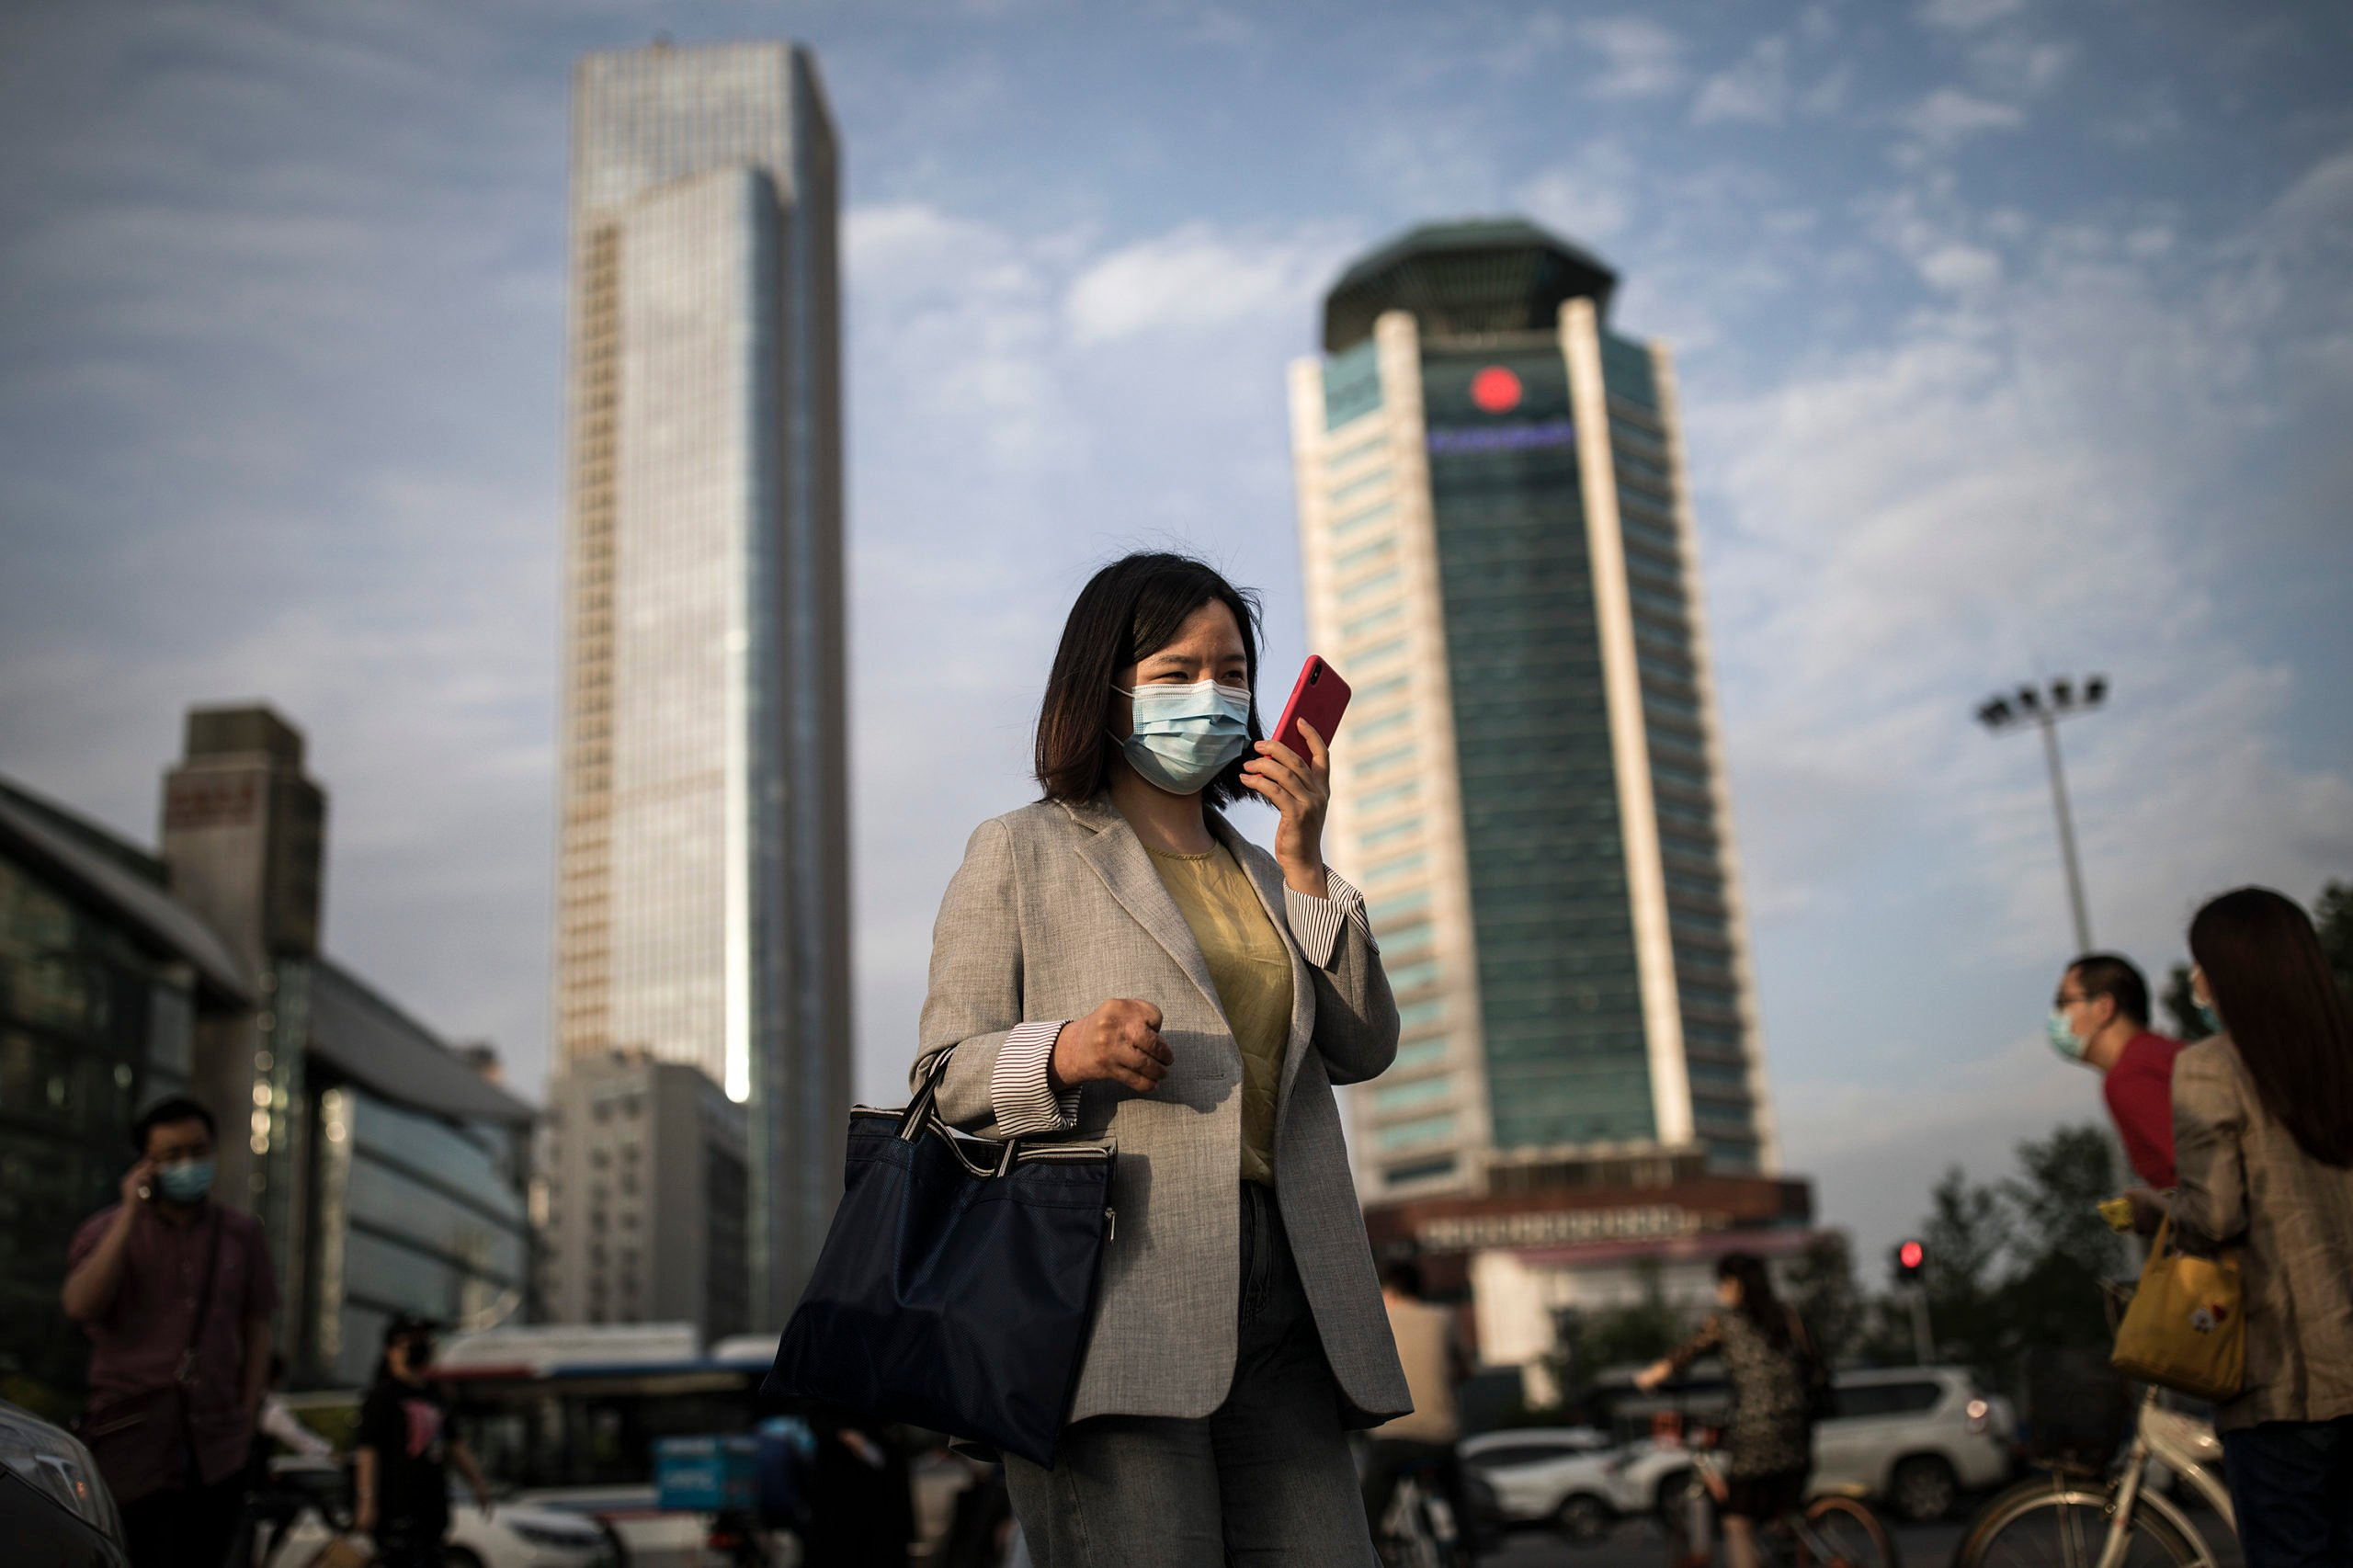 WUHAN, CHINA - MAY 11: (CHINA OUT) A women wears a mask while uses iPhone pass the crossroads on May 11, 2020 in Wuhan, China. The government has begun lifting outbound travel restrictions after almost 11 weeks of lockdown to stem the spread of COVID-19. (Photo by Getty Images)